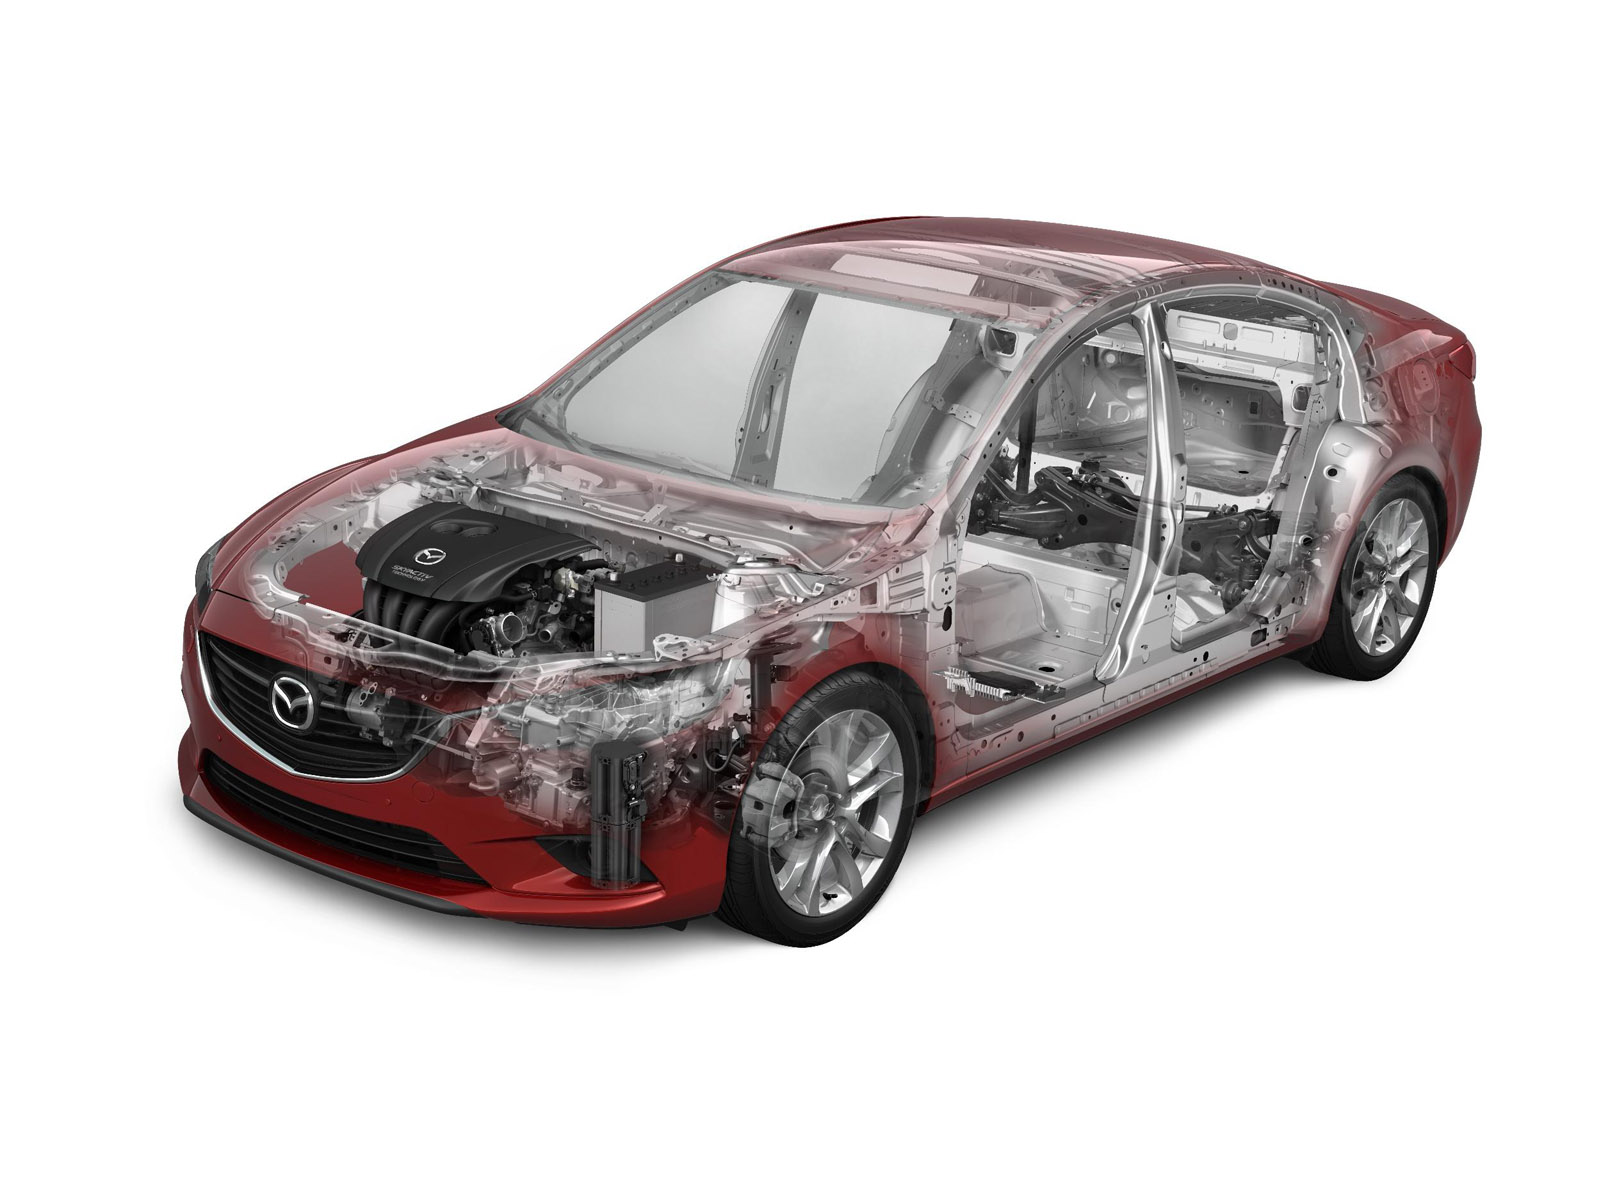 1908_588698_Mazda6_2012_technical_09_Ghost_view